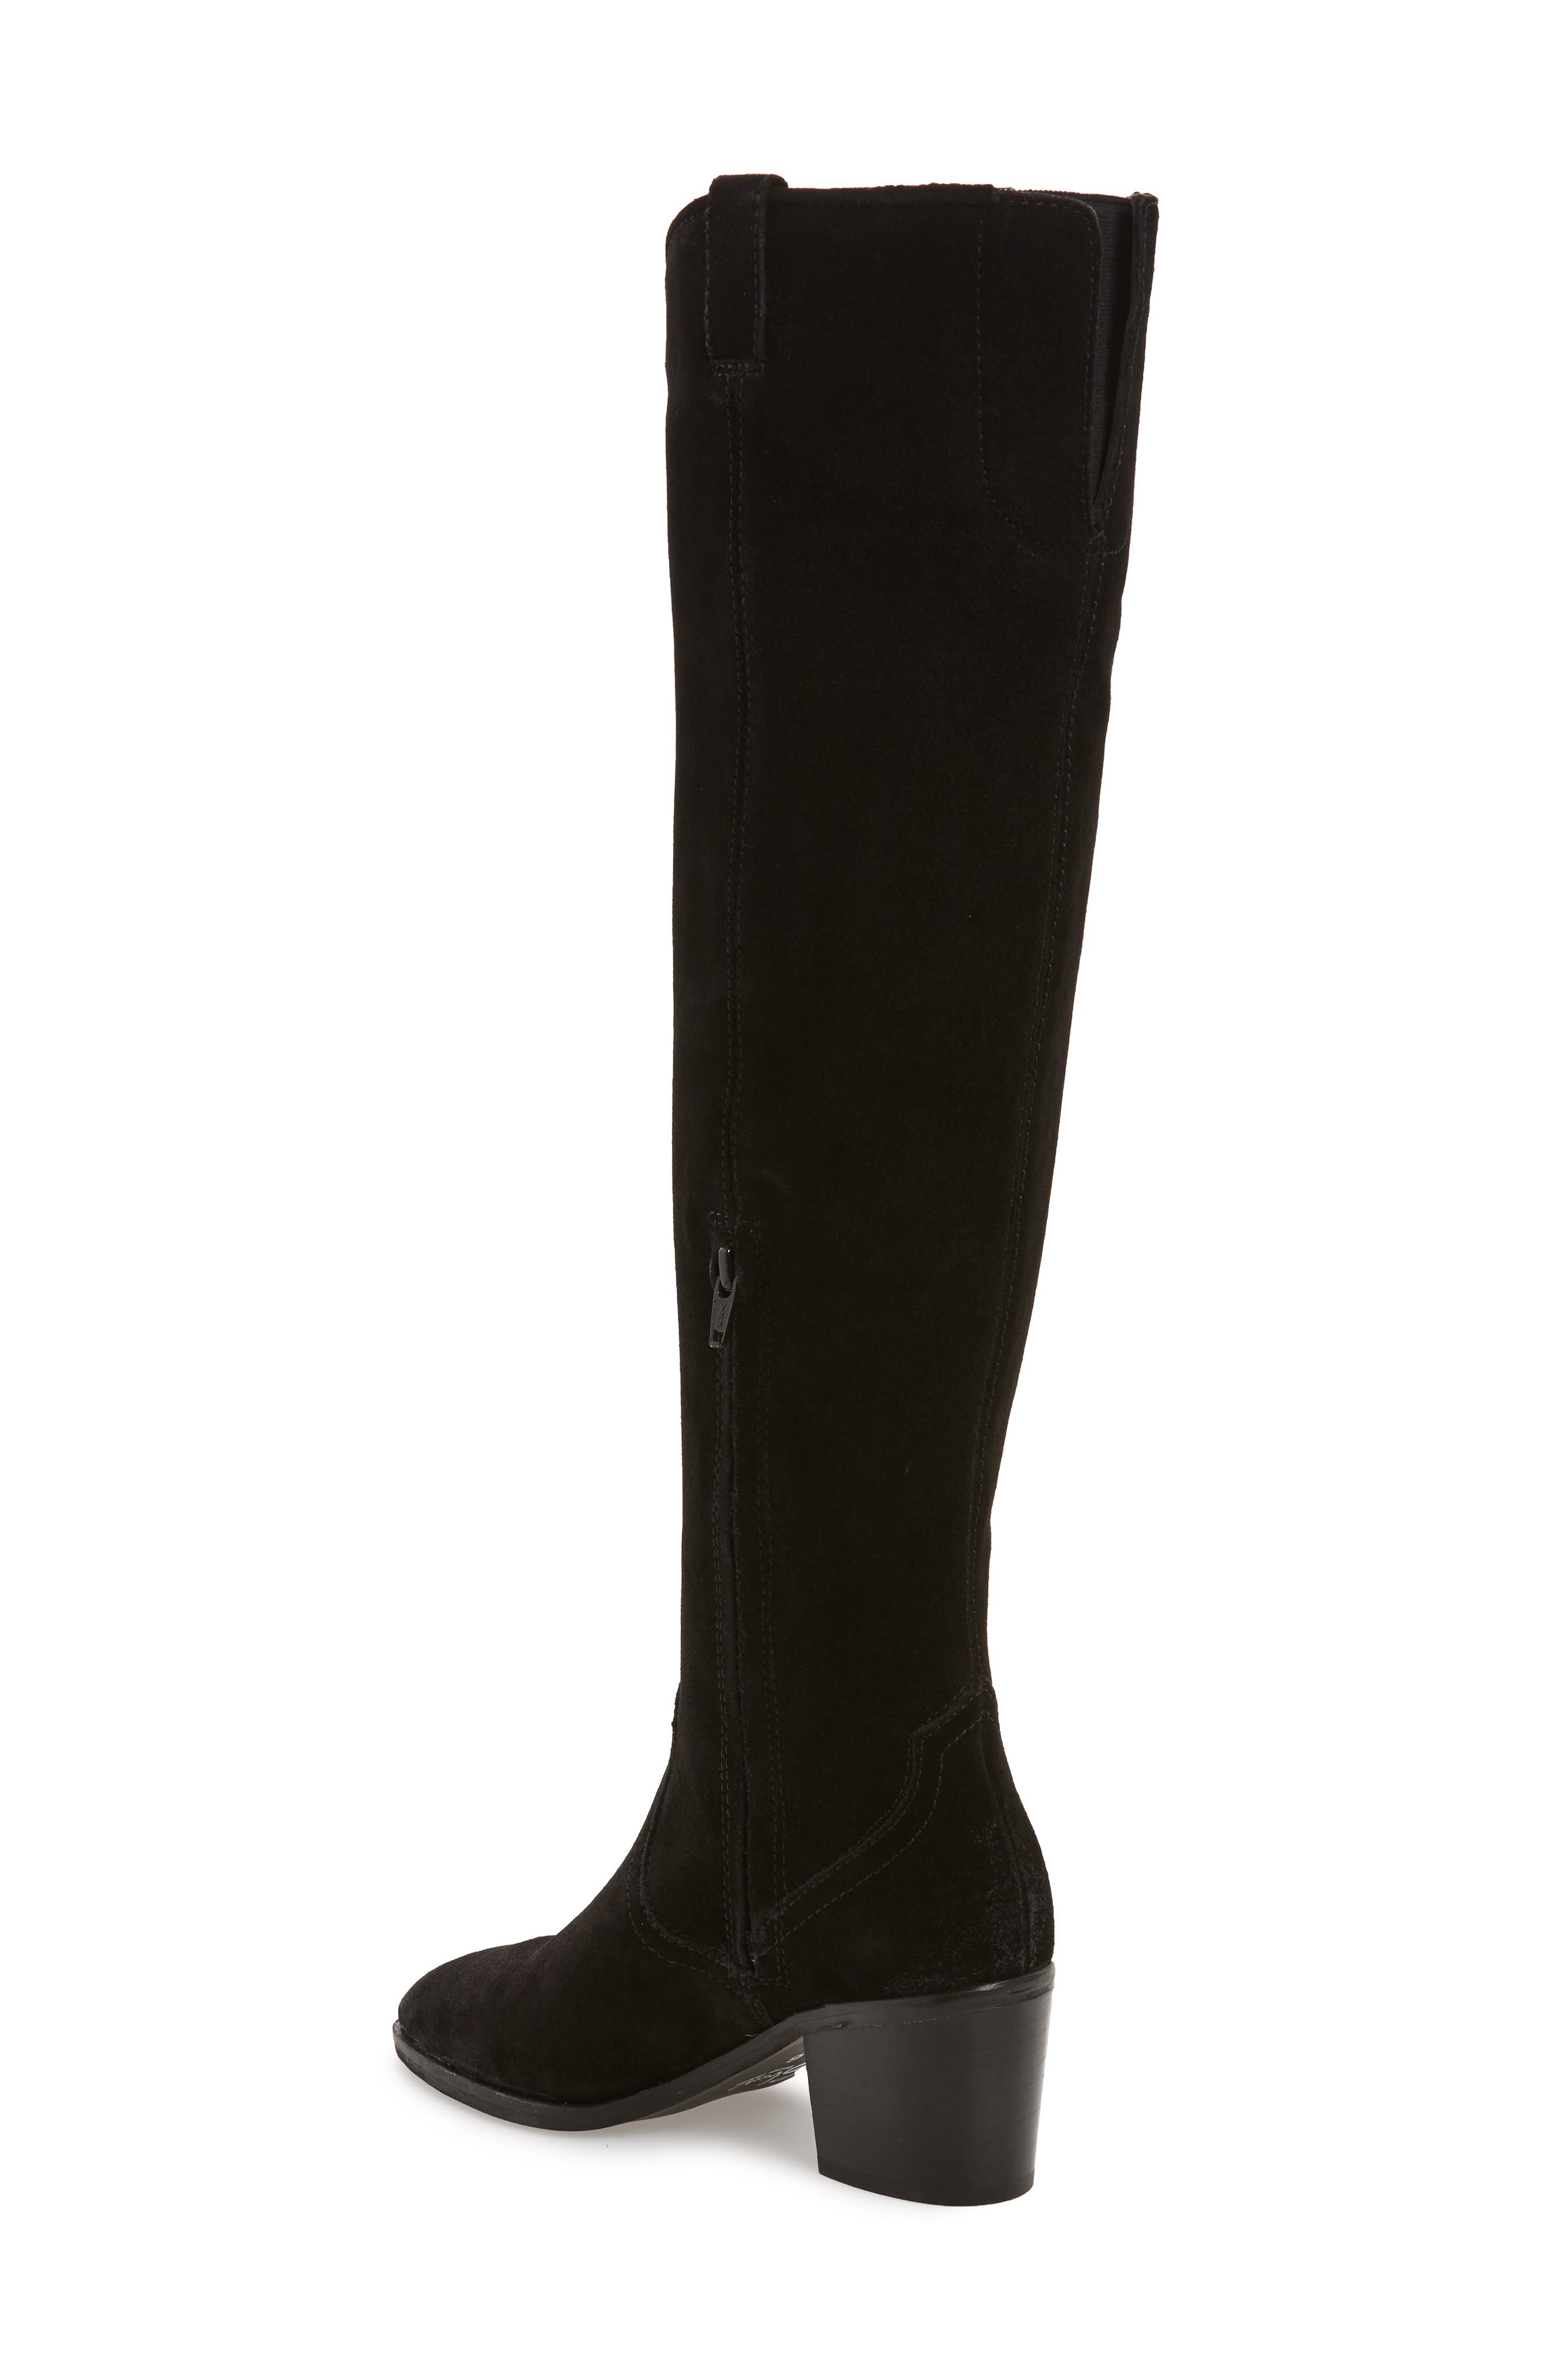 SBICCA, Delano Over the Knee Boot, Alternate thumbnail 2, color, BLACK LEATHER